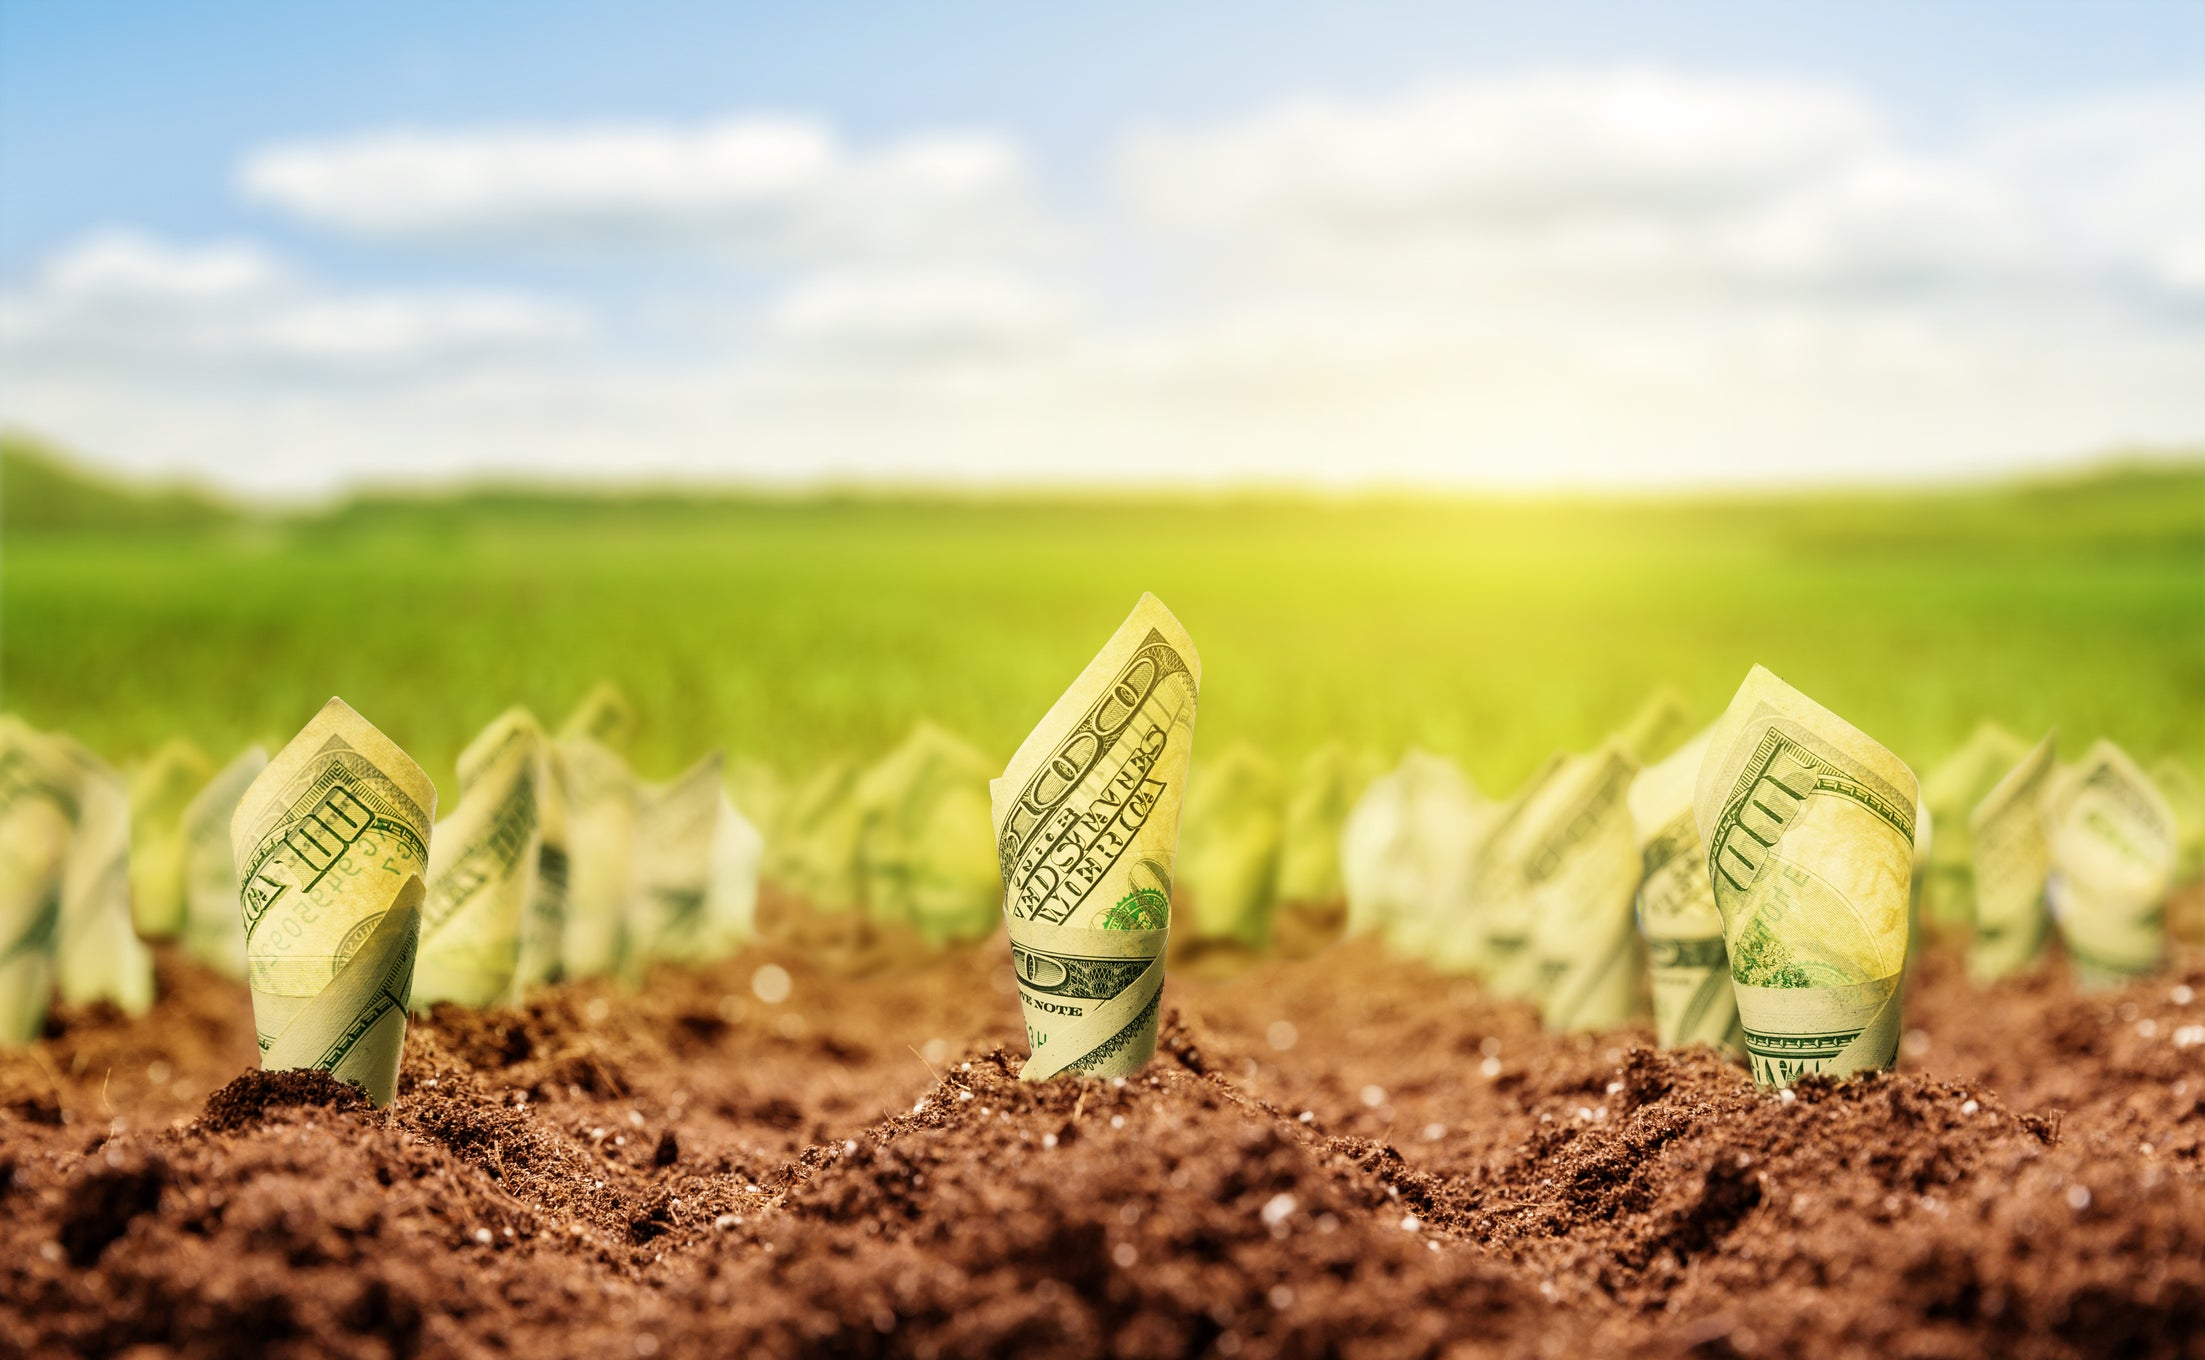 Rolled $100 notes growing out of the soil, with green grass and blue skies in the background.